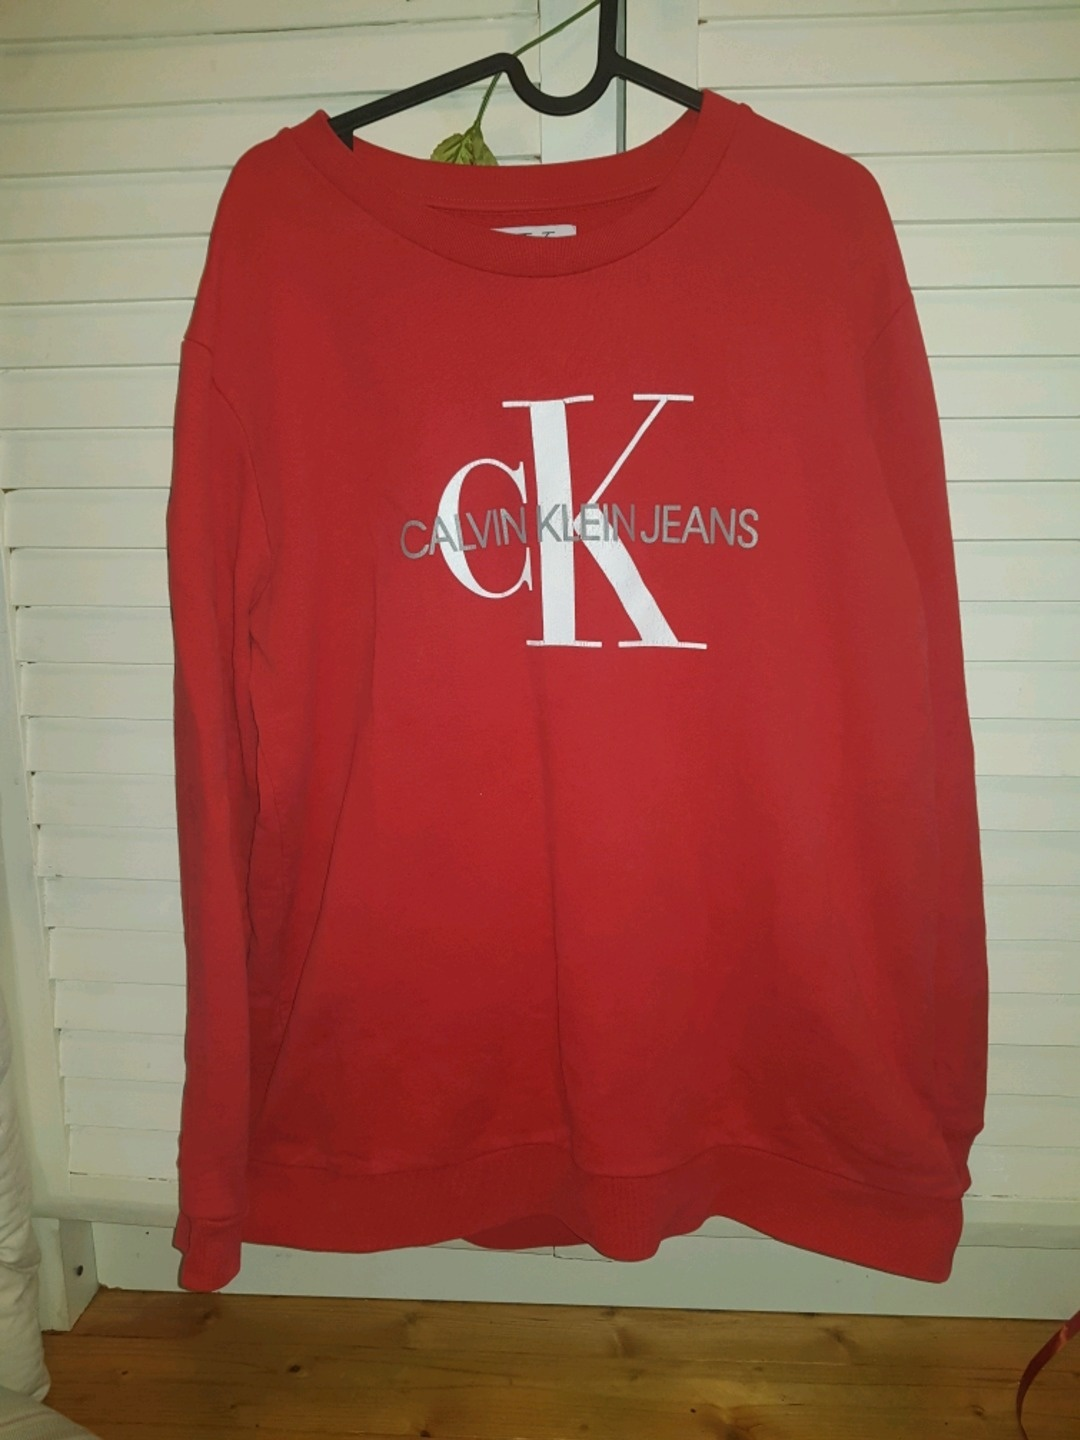 Damen kapuzenpullover & sweatshirts - CALVIN KLEIN photo 1